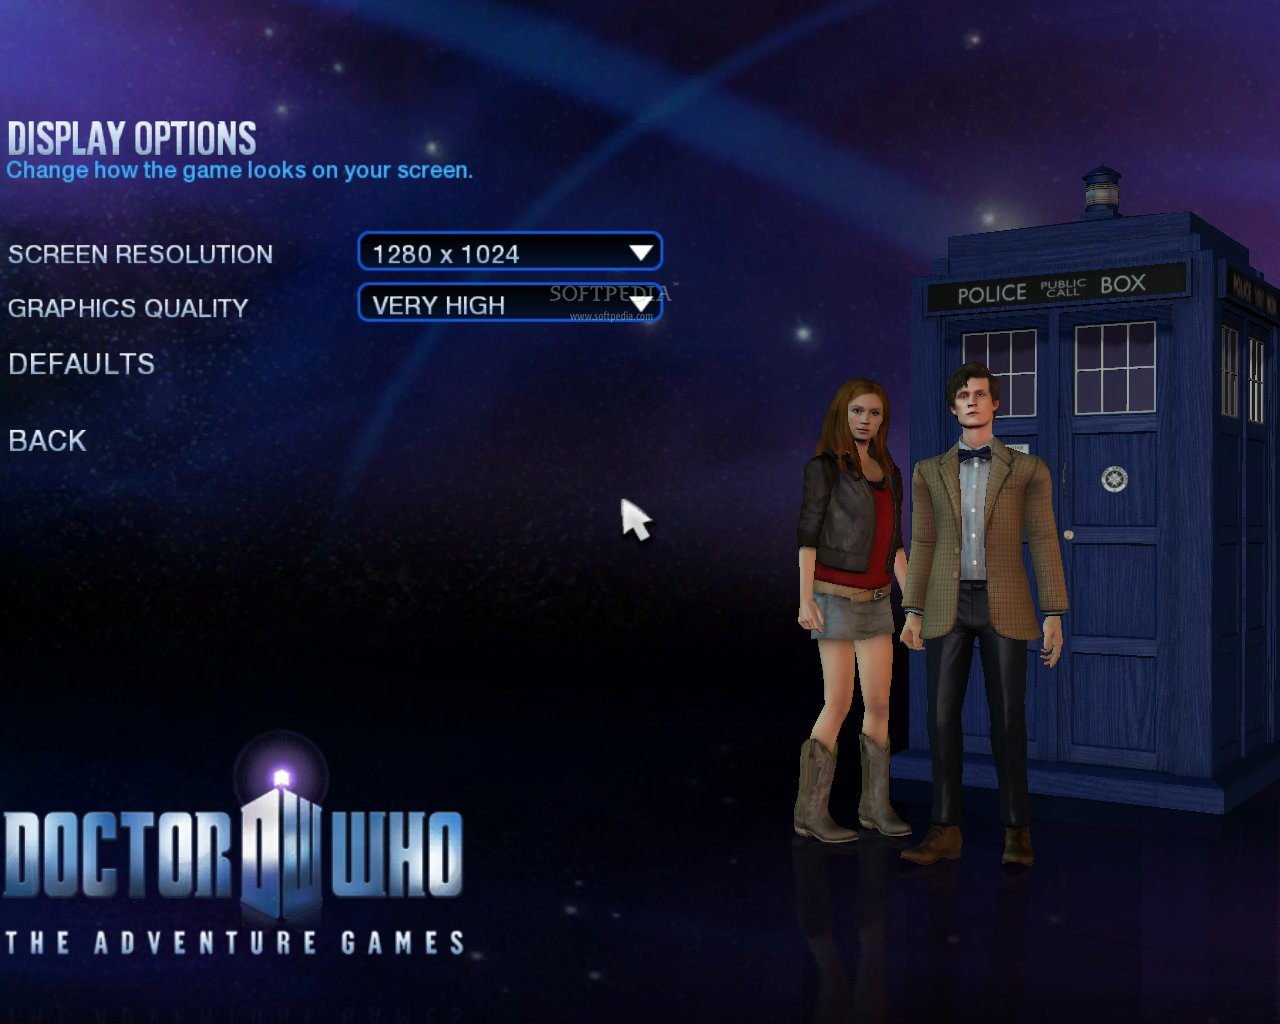 Doctor Who - Blood of the Cybermen Episode 2 screenshot 2